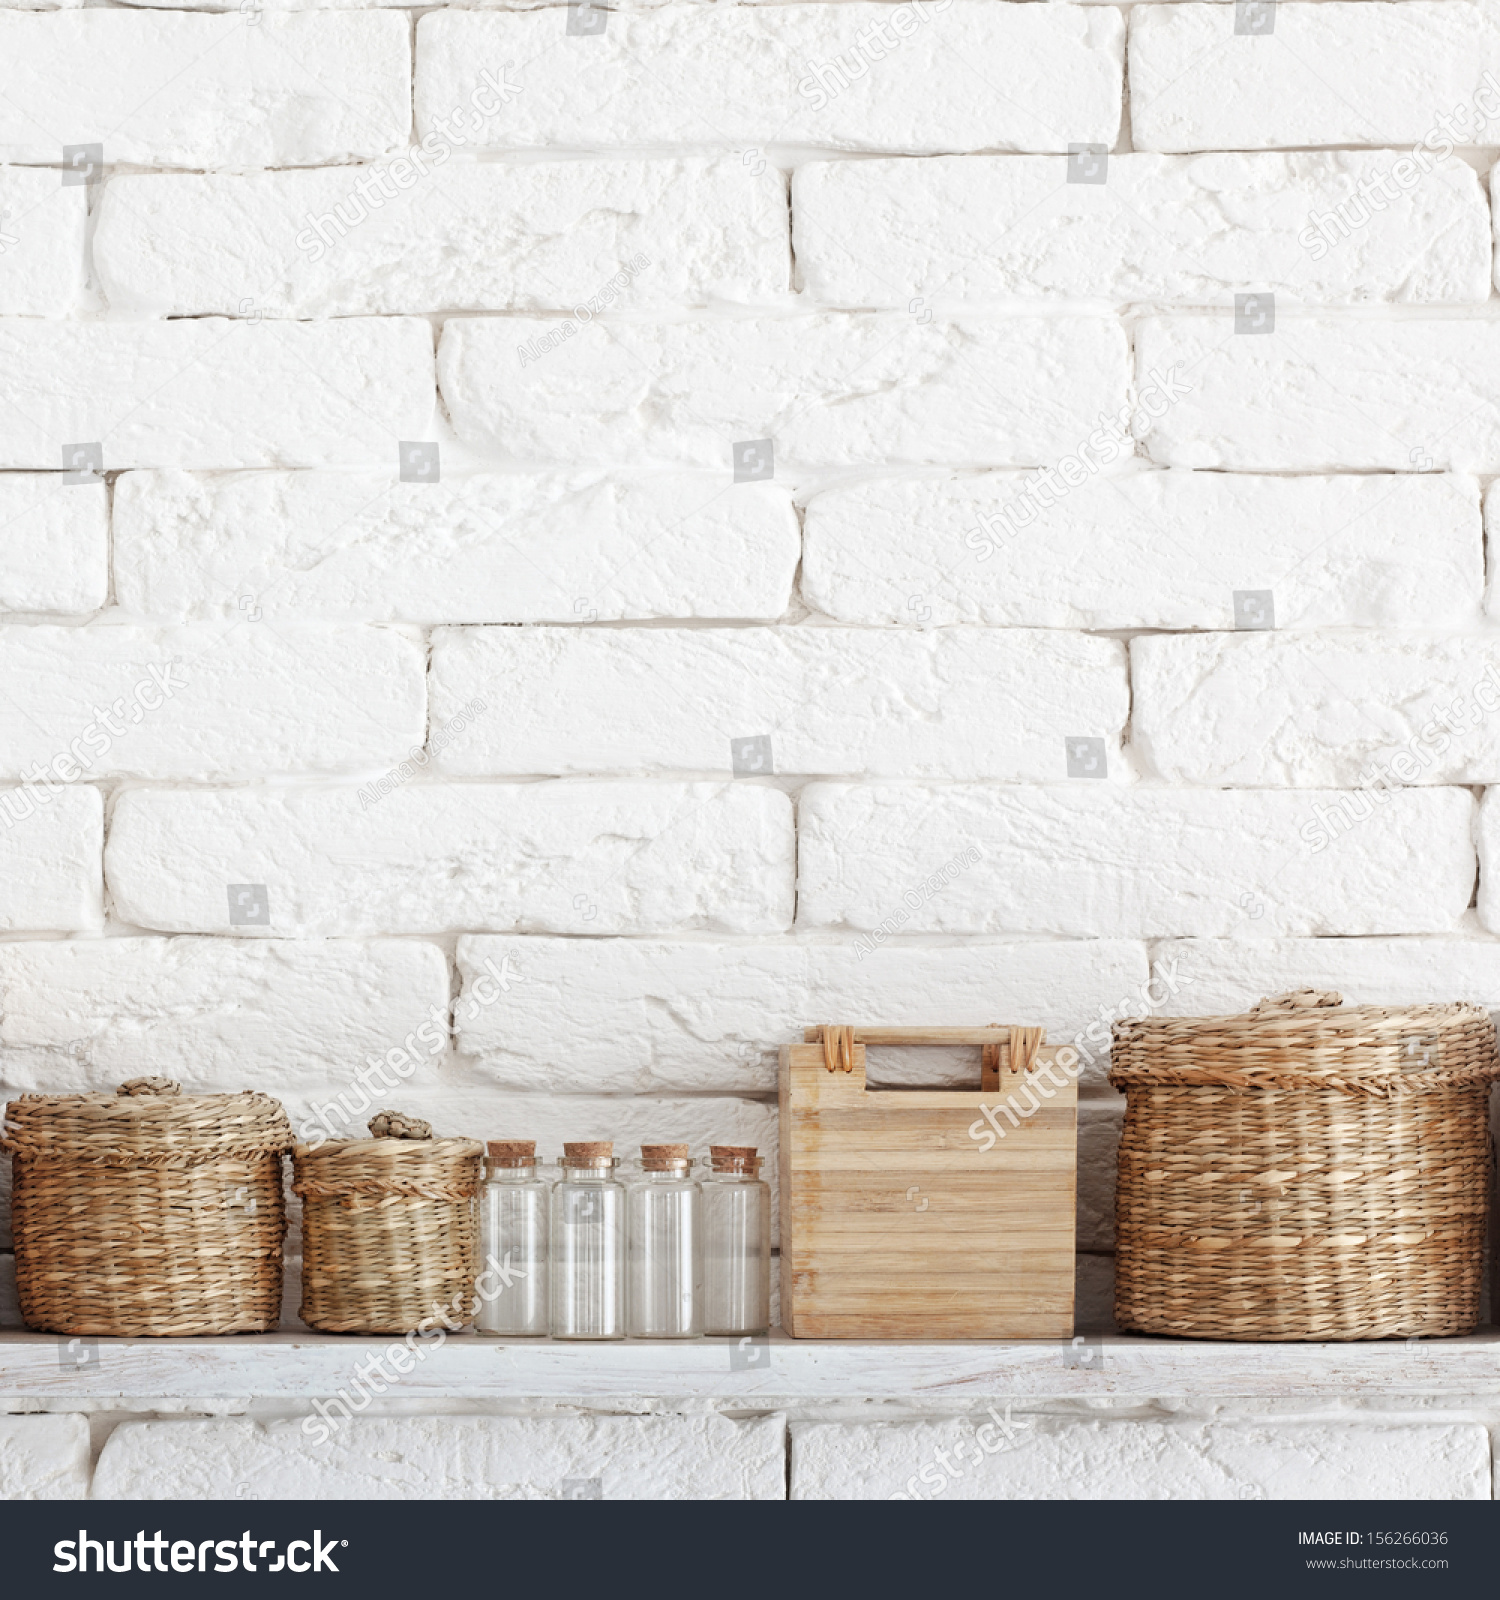 Plain wood table with hipster brick wall background stock photo - Decorative Shelf On White Brick Wall With Vintage Bottles And Wicker Jars On It